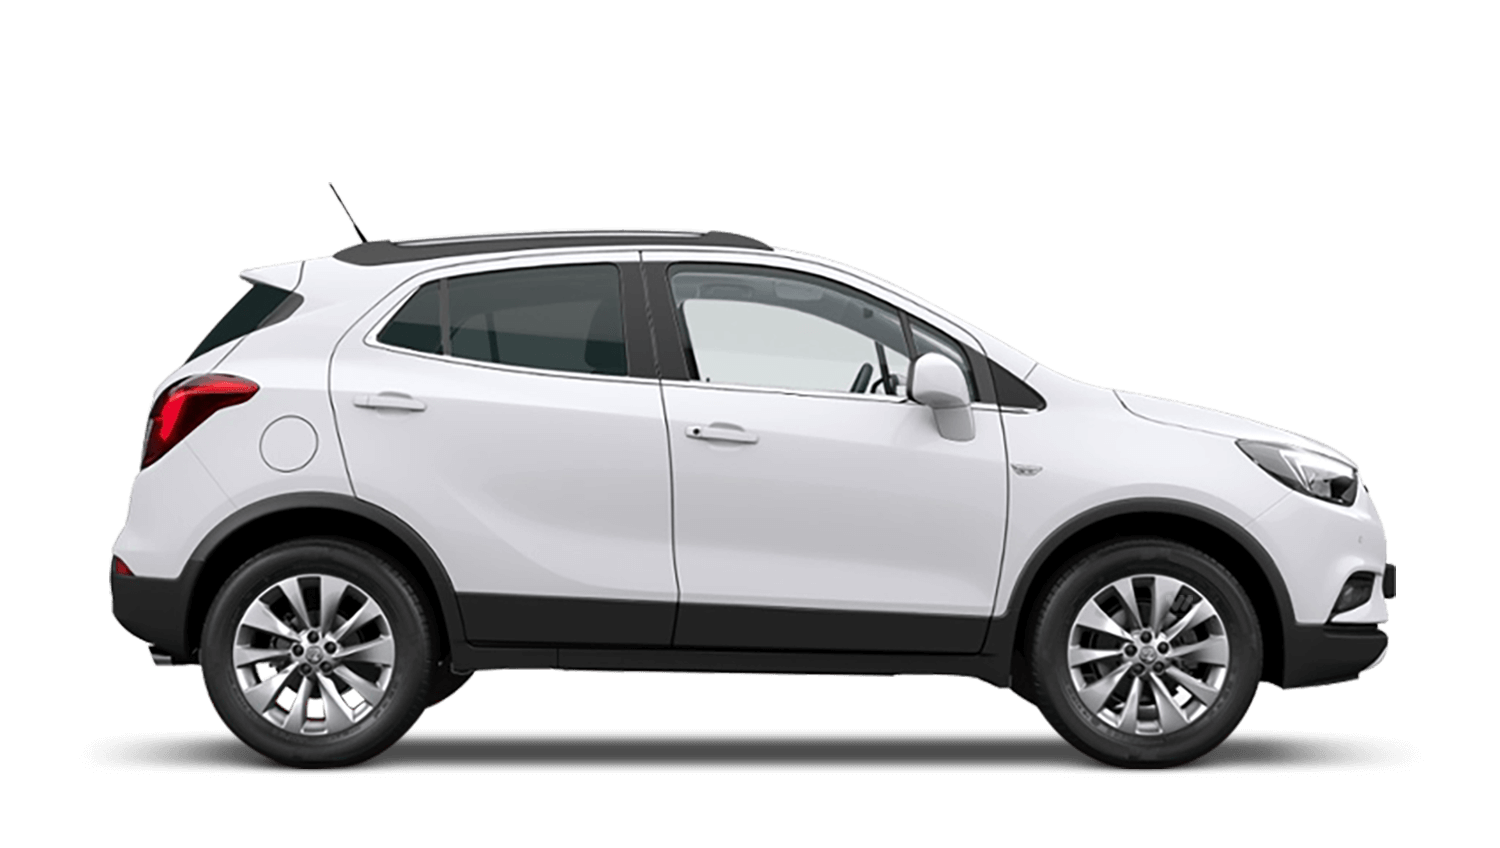 Summit White (Brilliant) Vauxhall Mokka X